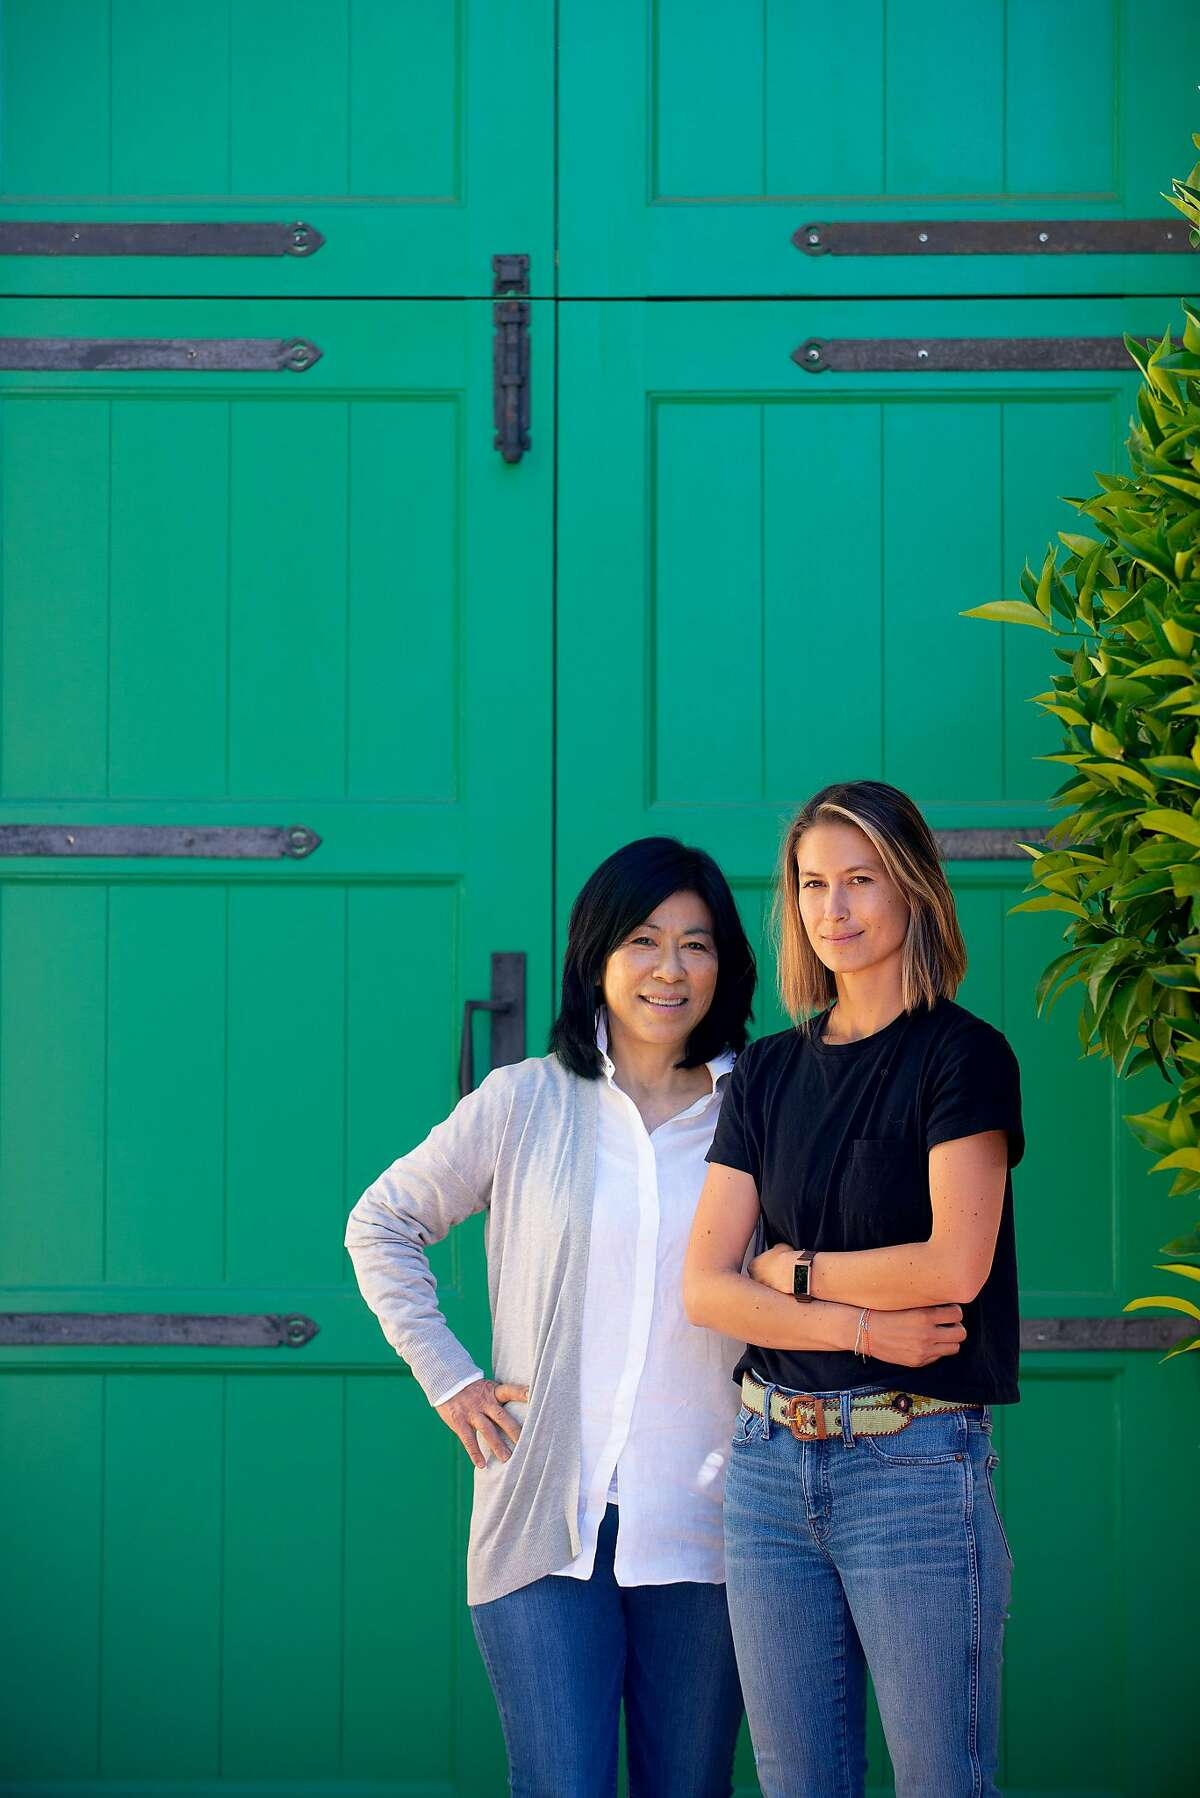 """""""If you want to keep this property, you're going to have to learn how to run it,"""" Naoko Dalla Valle, left, told her daughter Maya."""